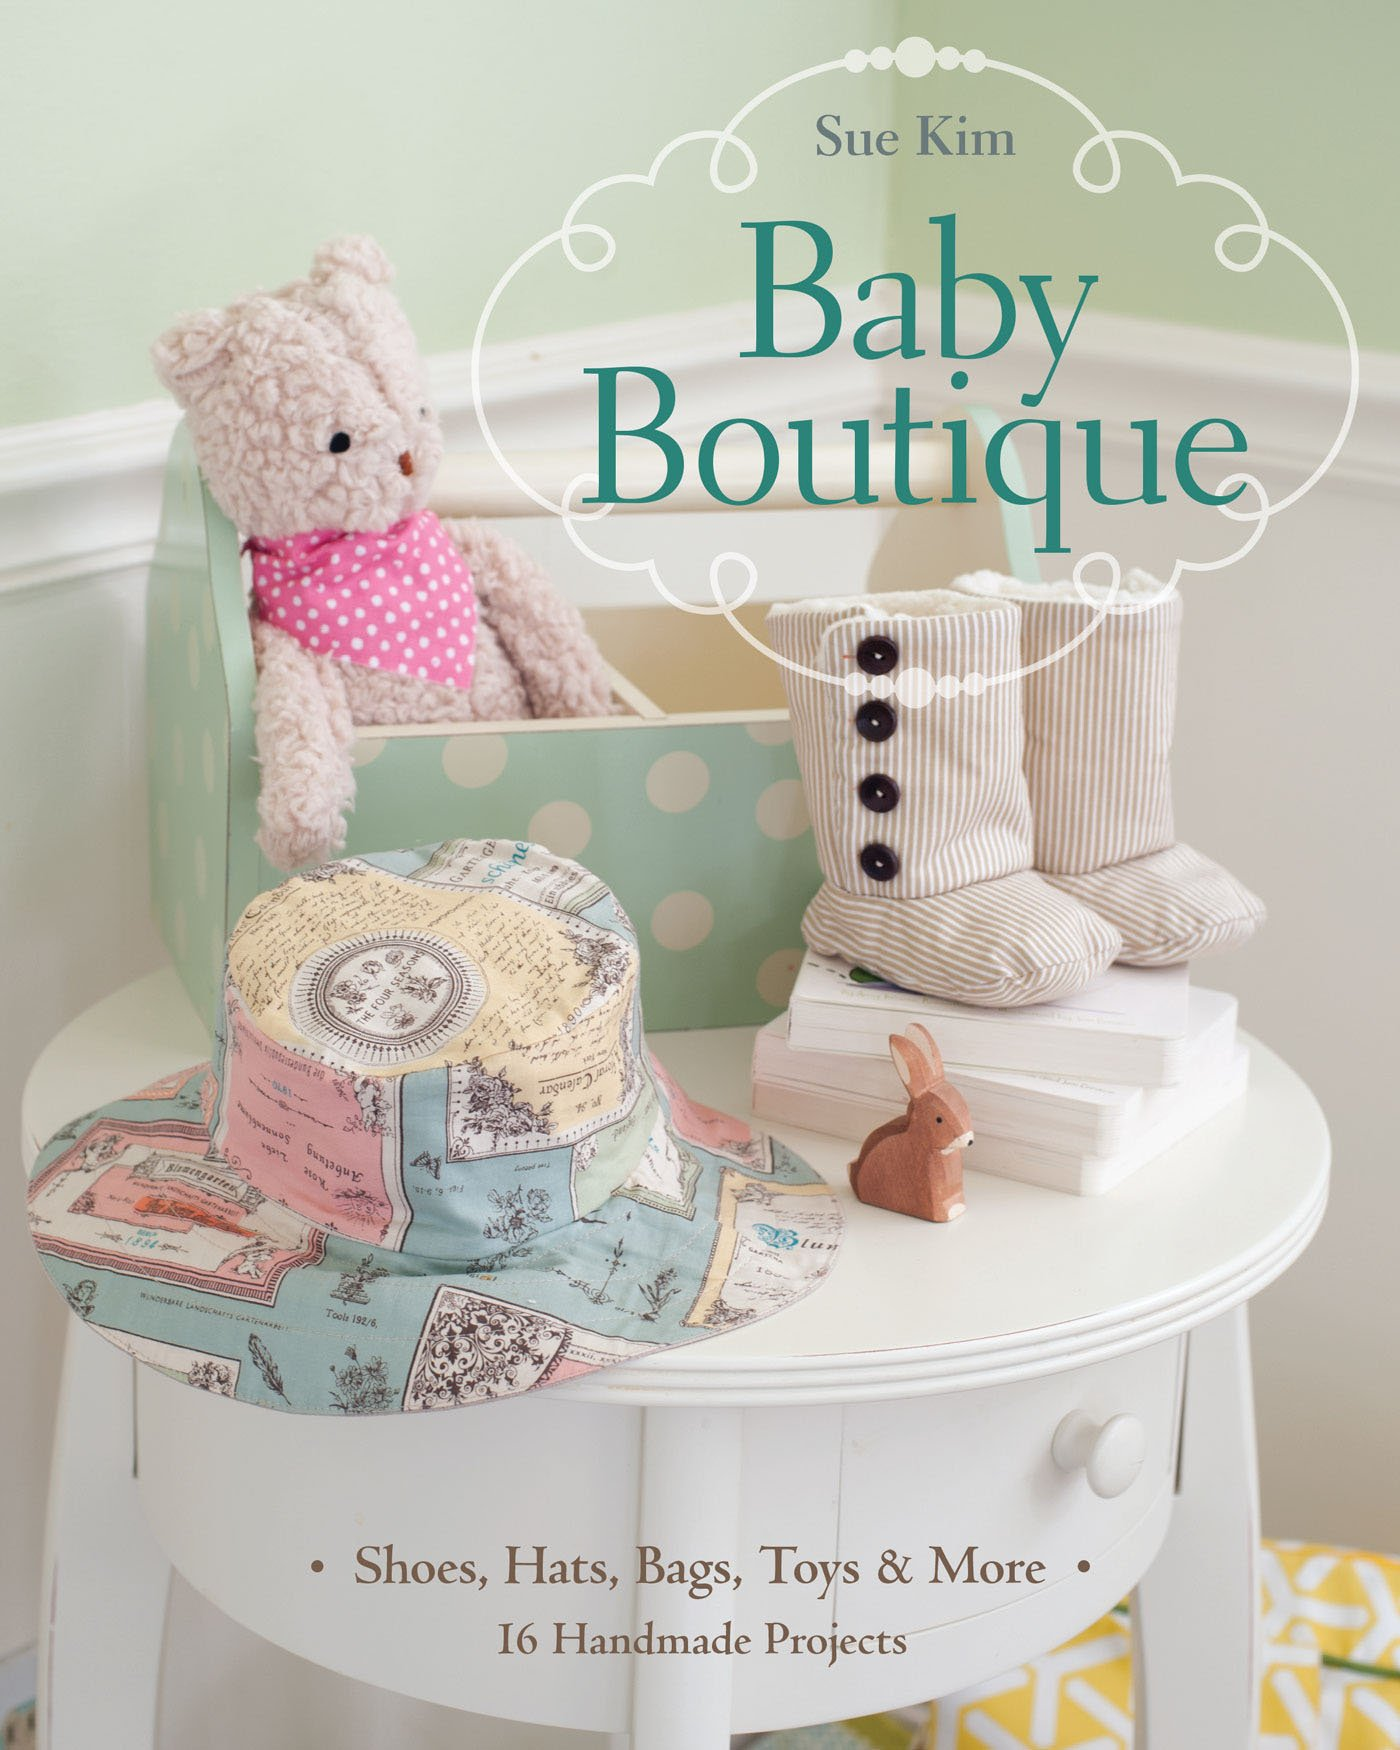 Read Online Baby Boutique: 16 Handmade Projects • Shoes, Hats, Bags, Toys & More pdf